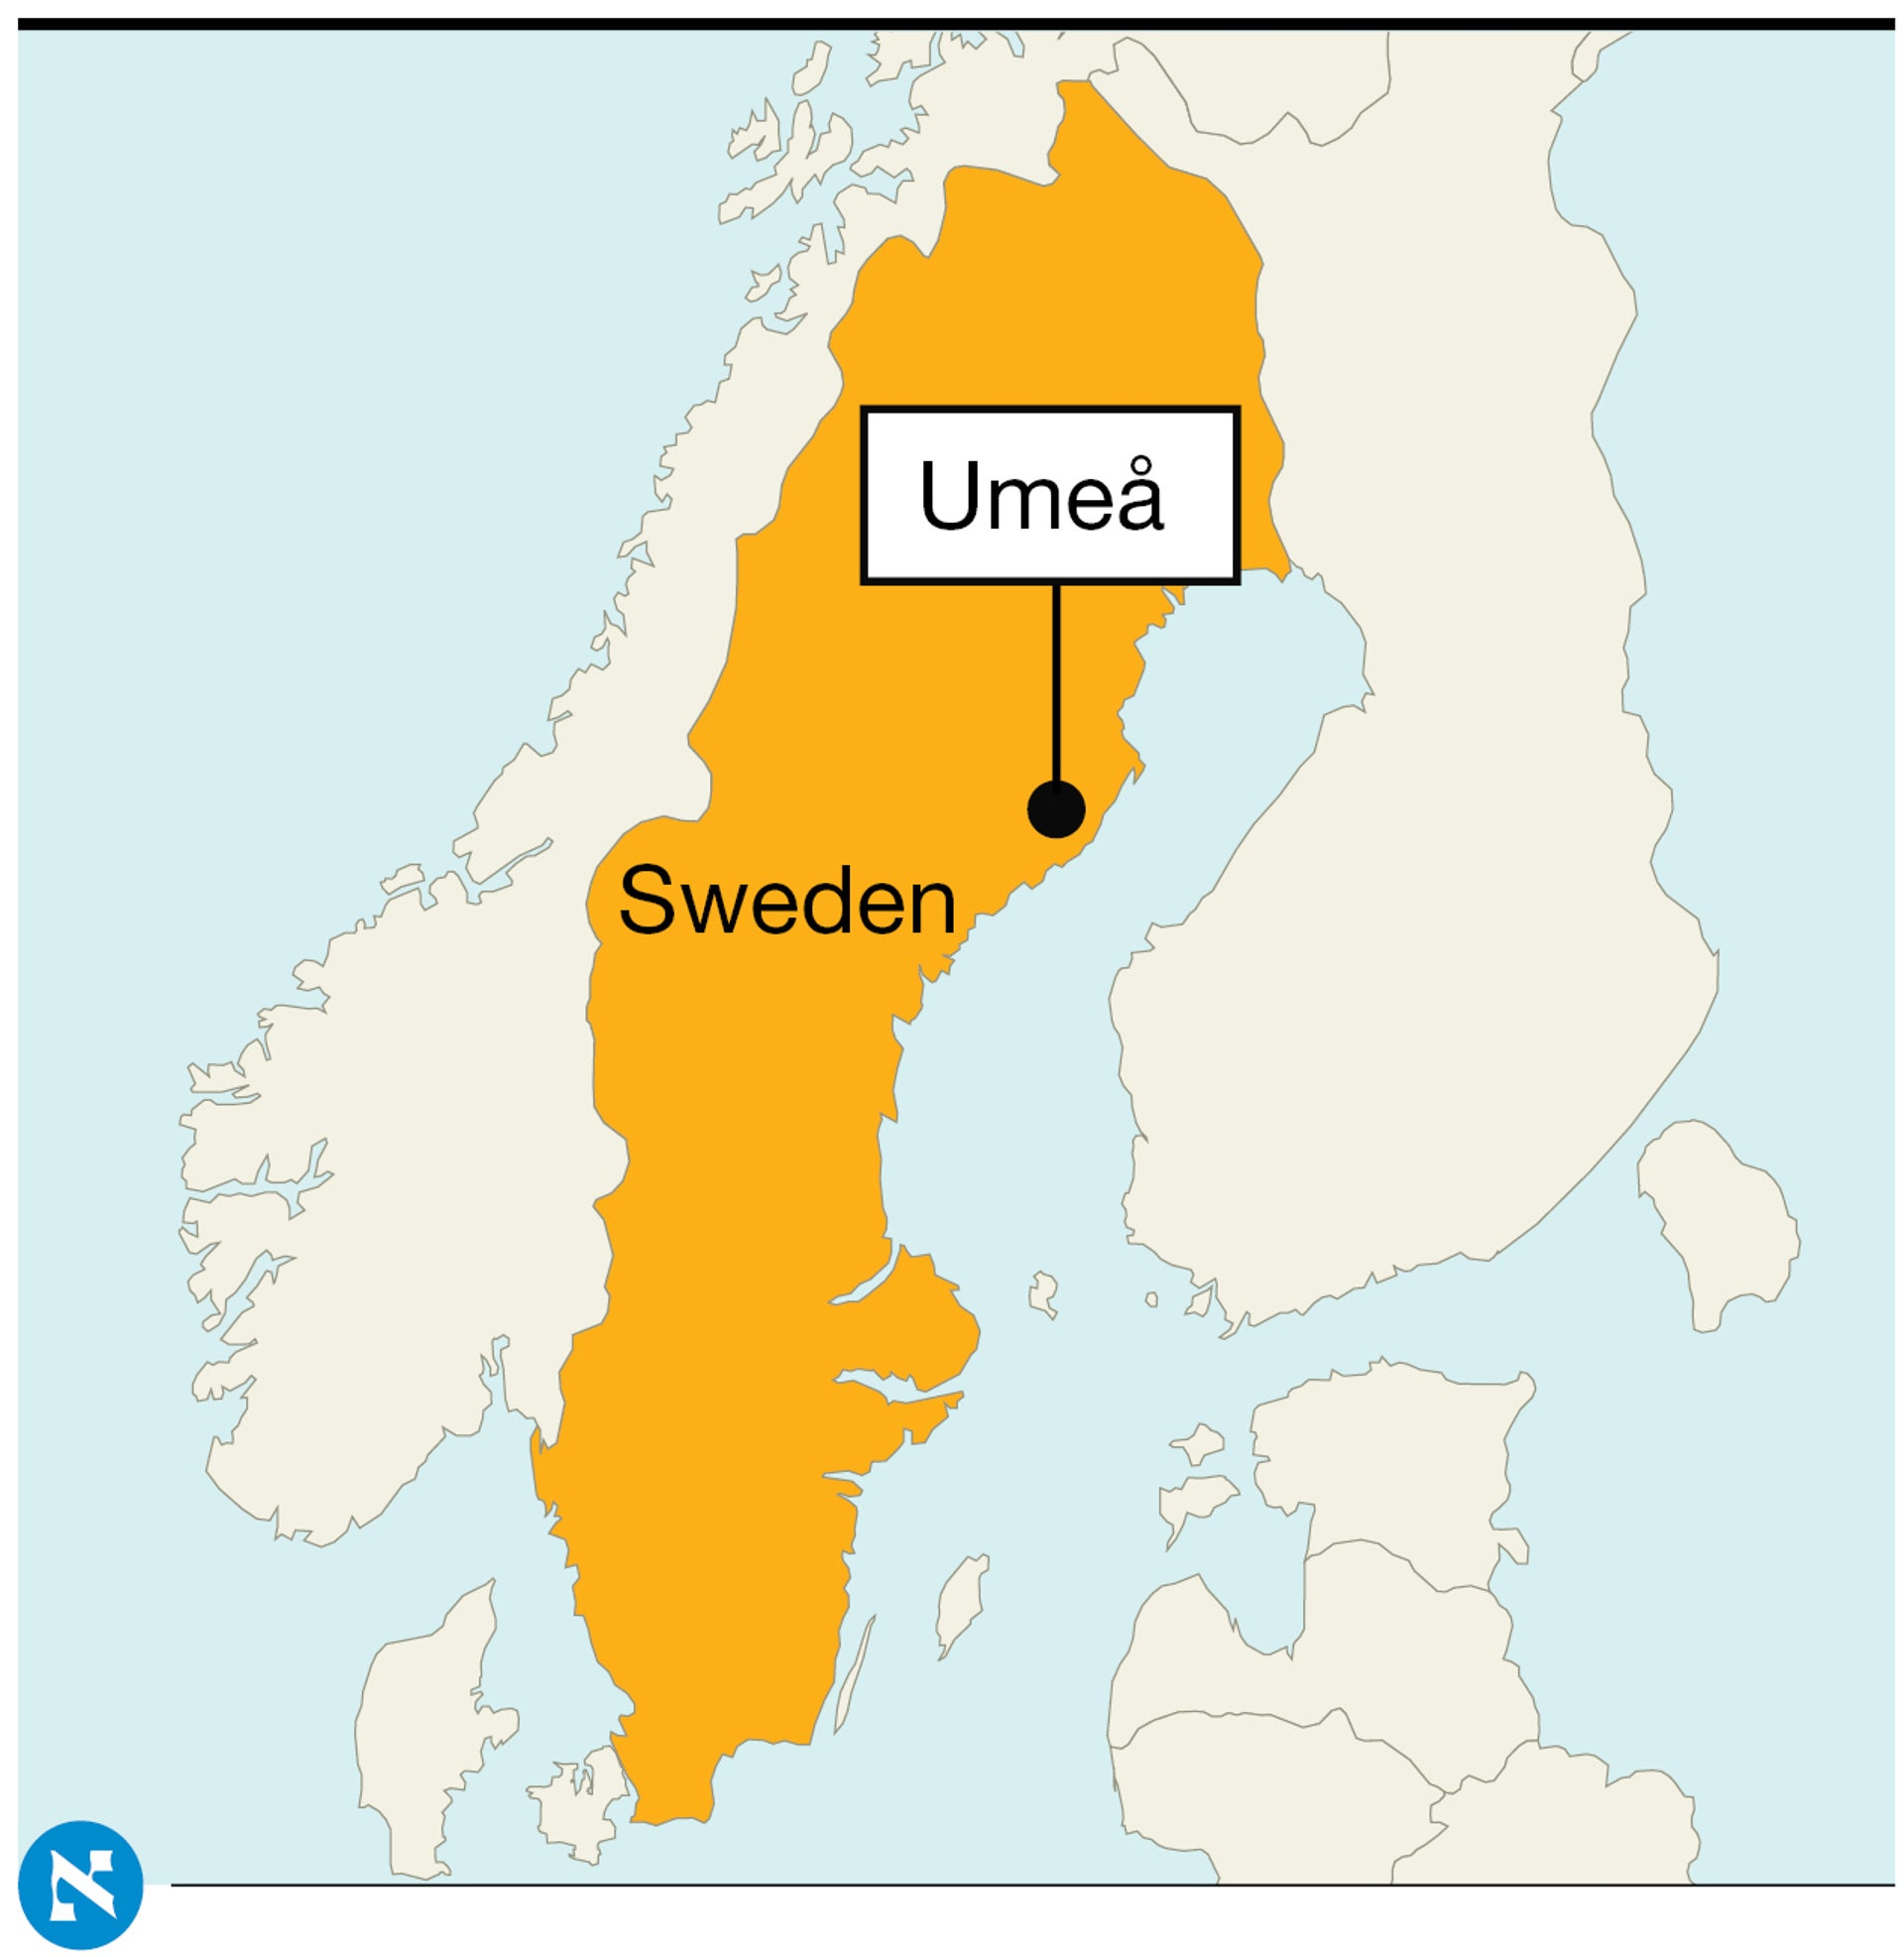 A map of Sweden, showing the location of Umeå along the country's northeast coast.